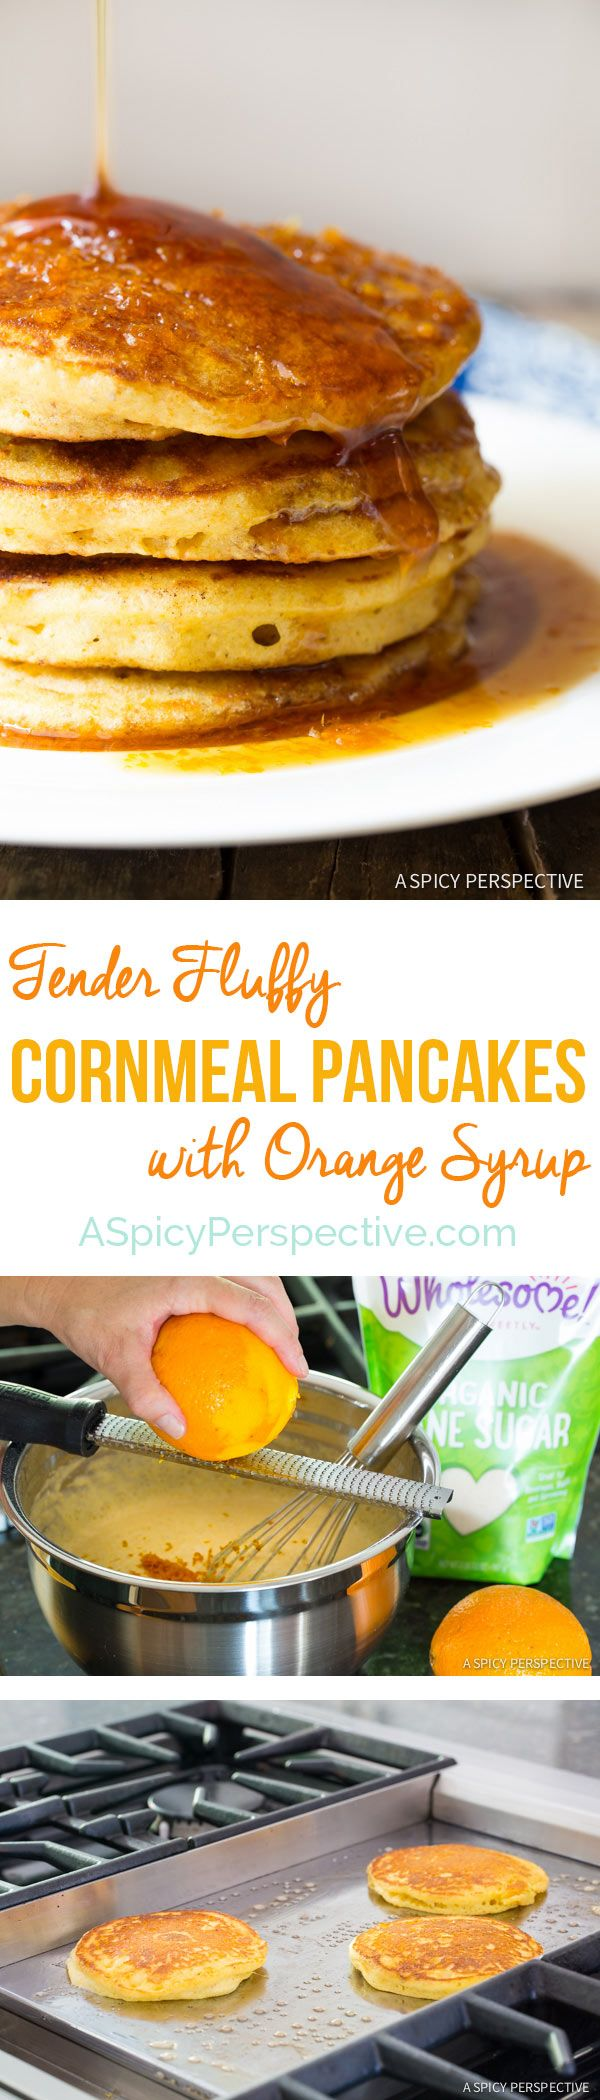 You will love these Cornmeal Pancakes with Orange Syrup on ASpicyPerspective.com #breakfast #pancakes